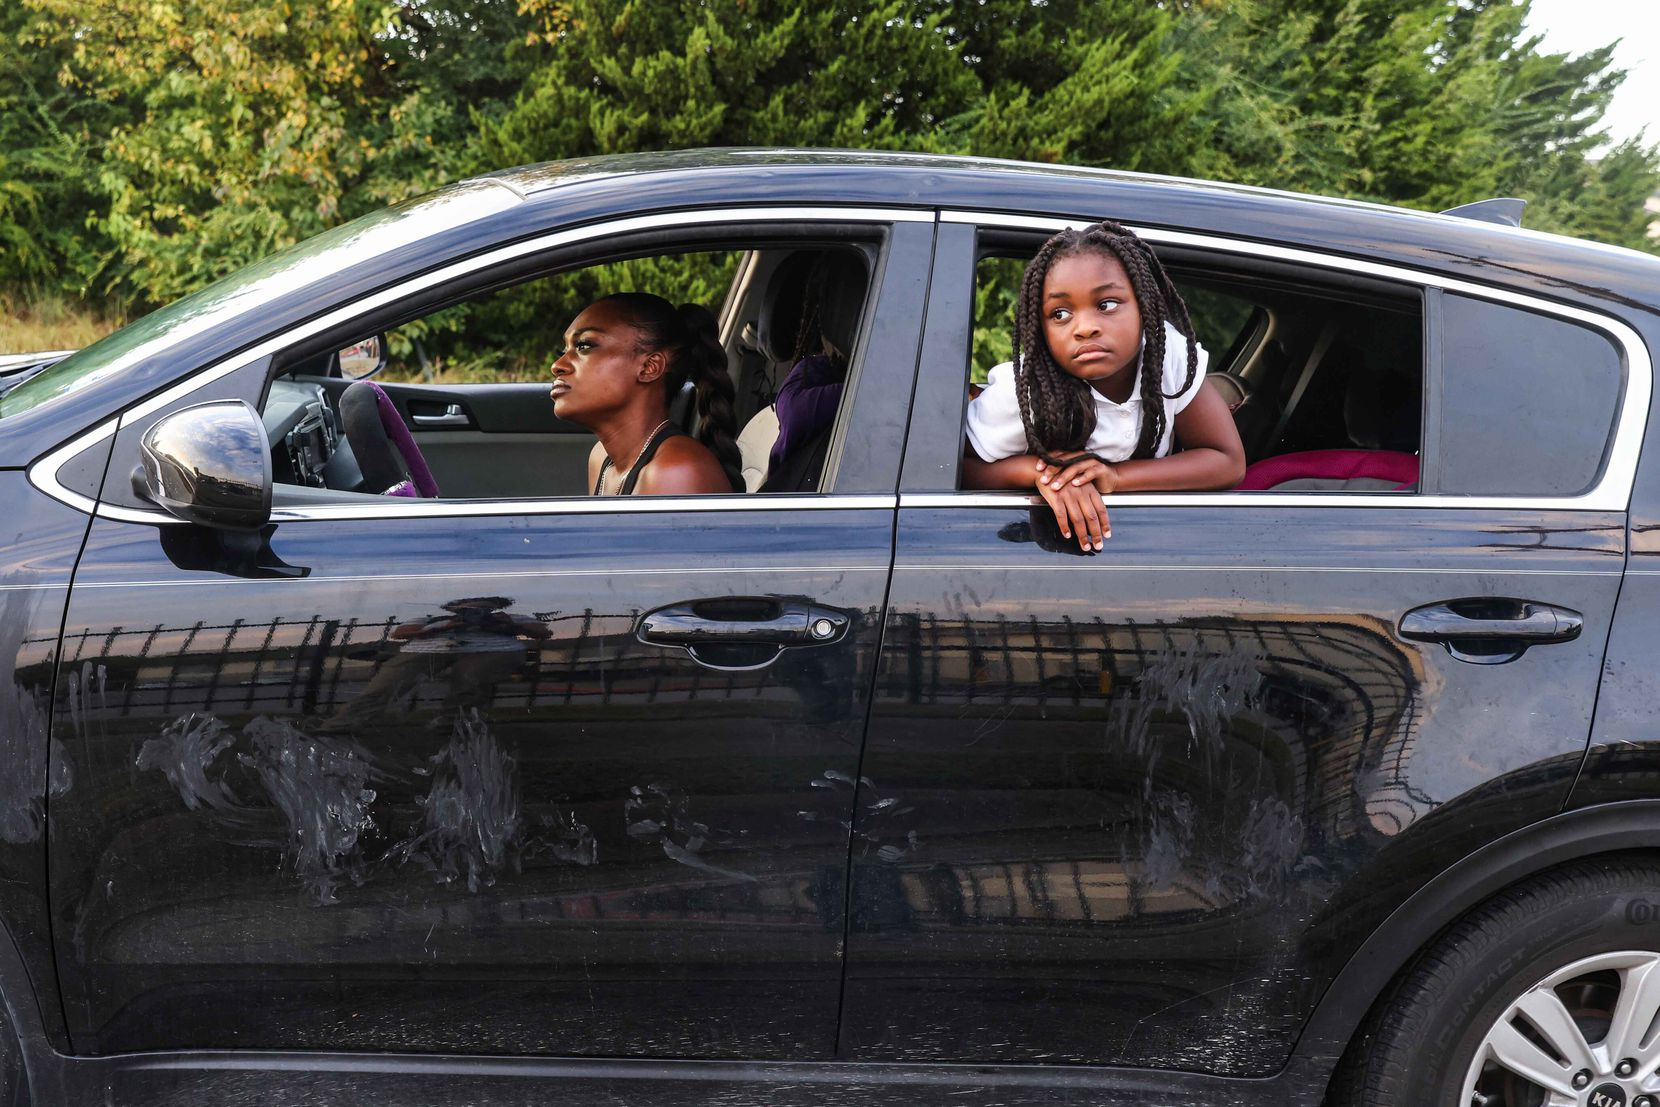 Highland Hills Apartments resident Dejanette Dennis and one of her daughters, 7-year-old Azariah, wait to be allowed entry into Dennis' unit to collect belongings on Friday, Oct. 1, 2021.